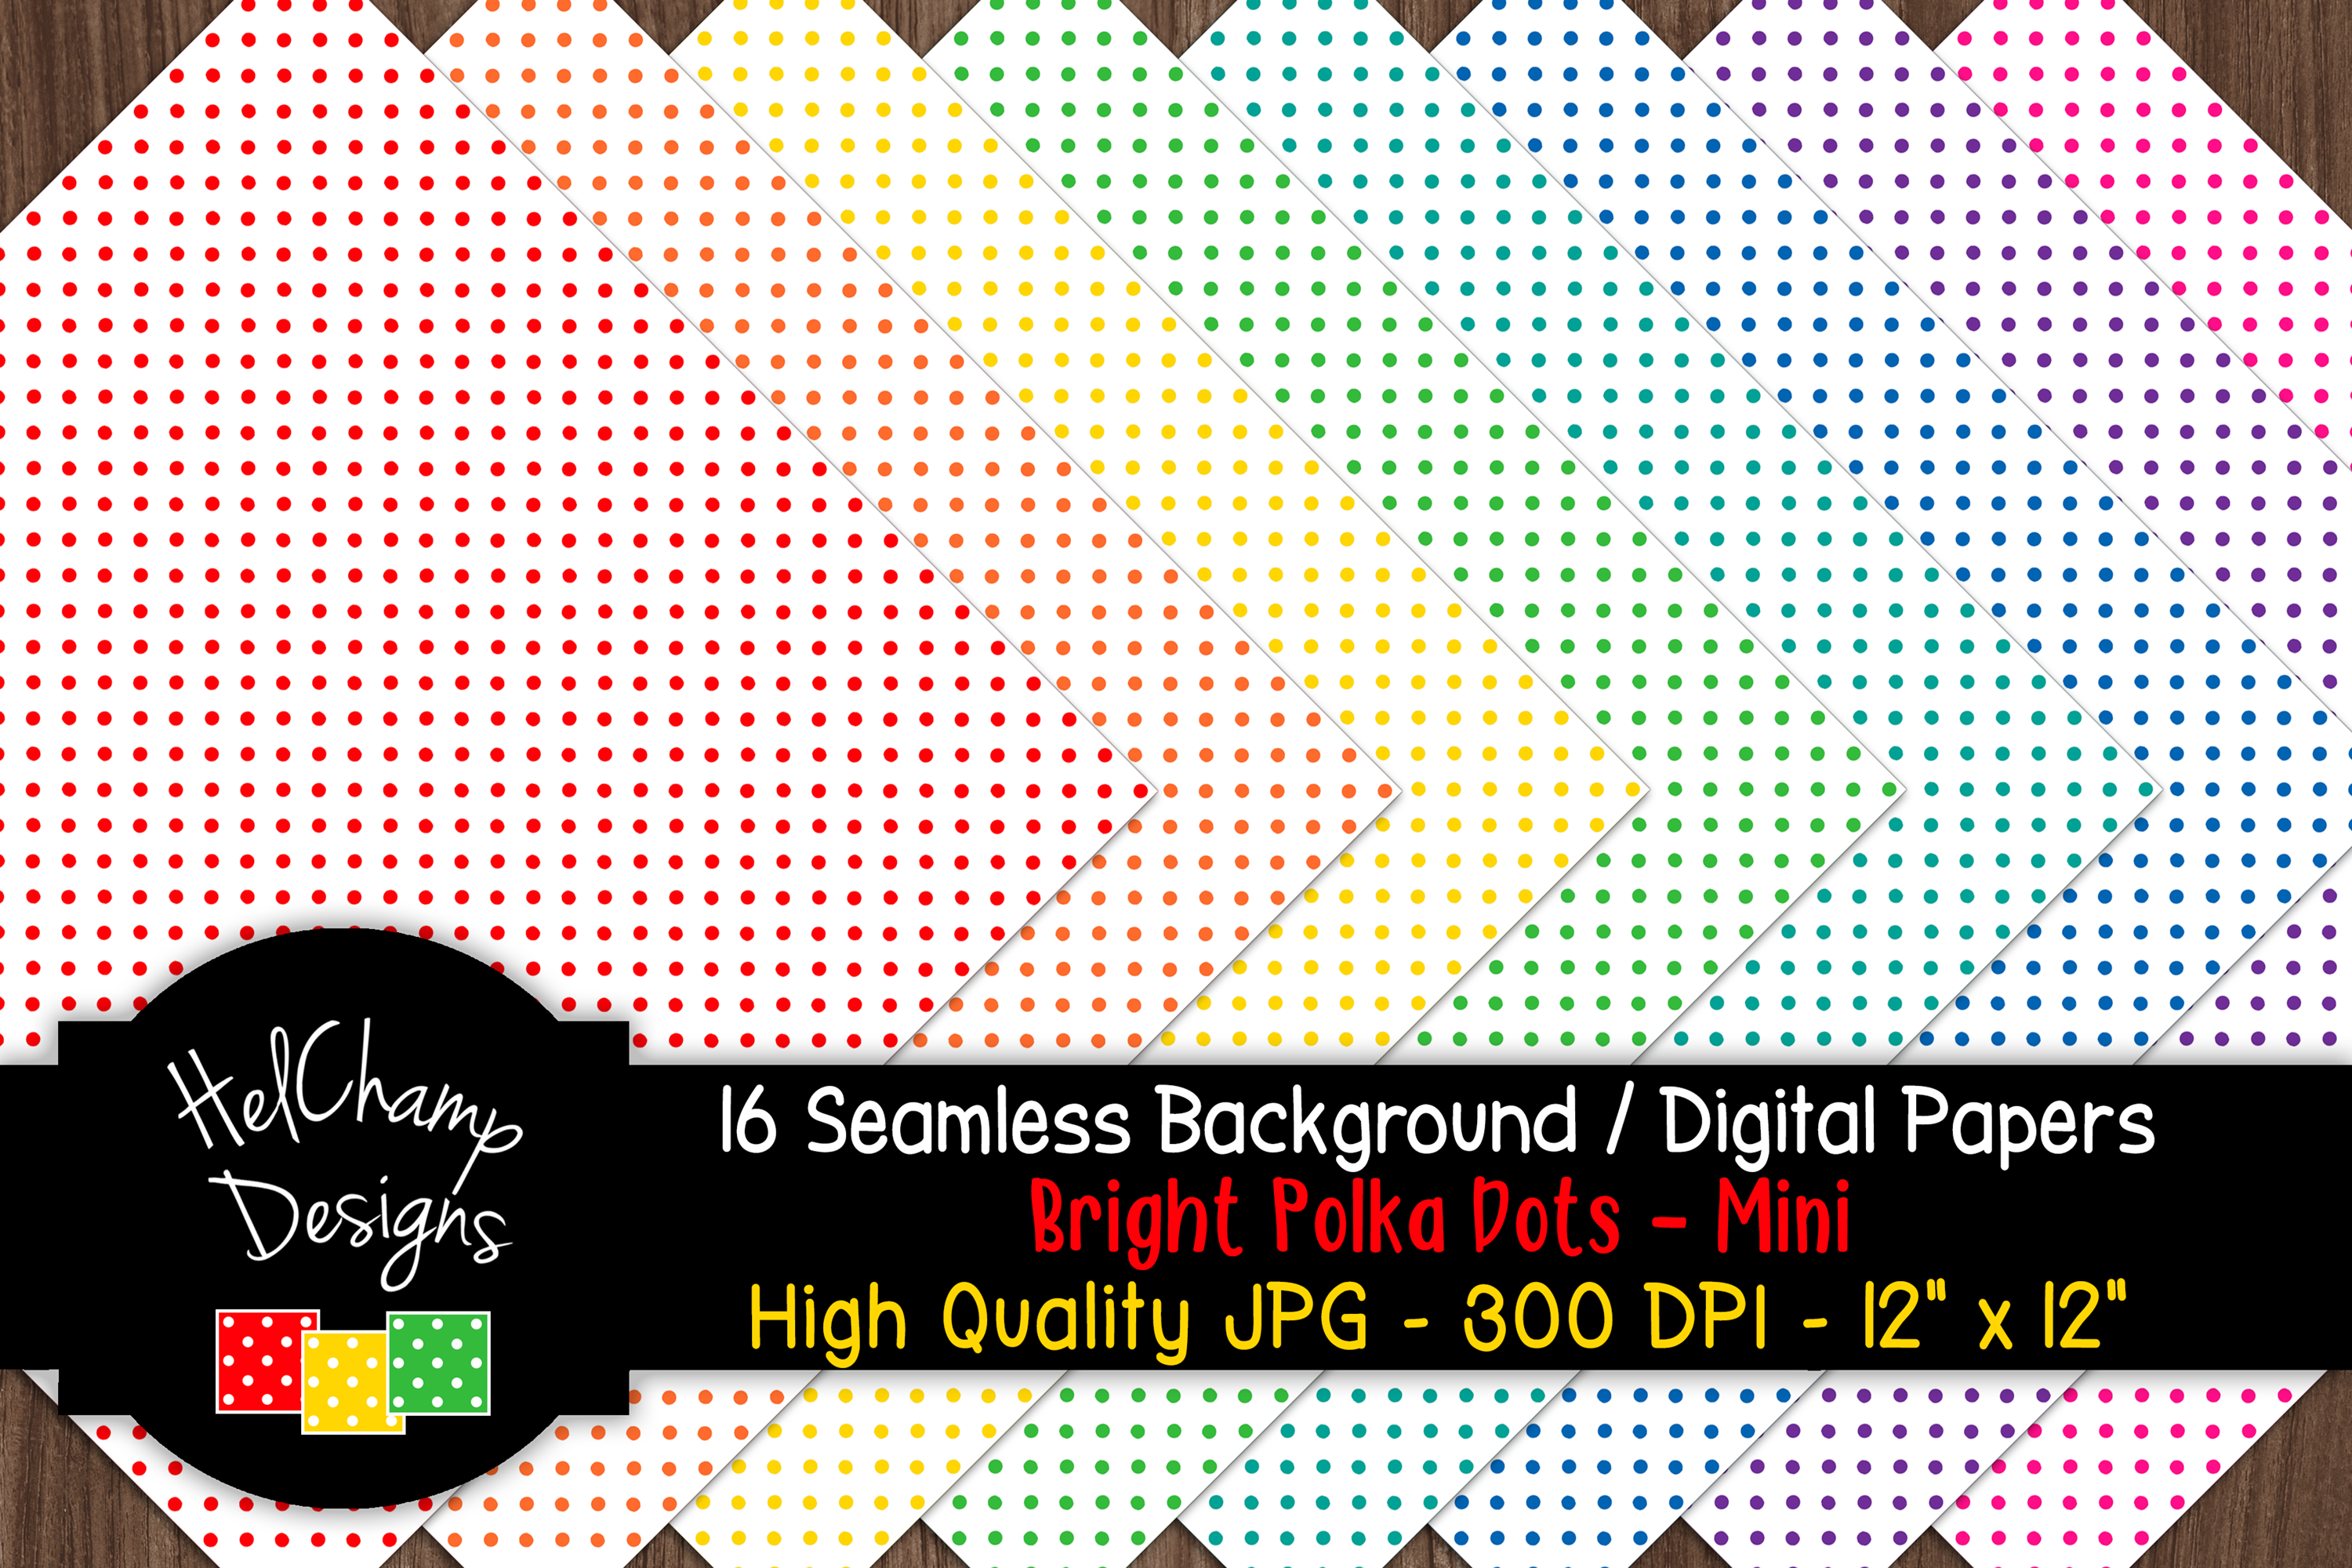 16 seamless Digital Papers - Bright Polka Dots Mini - HC017 example image 6